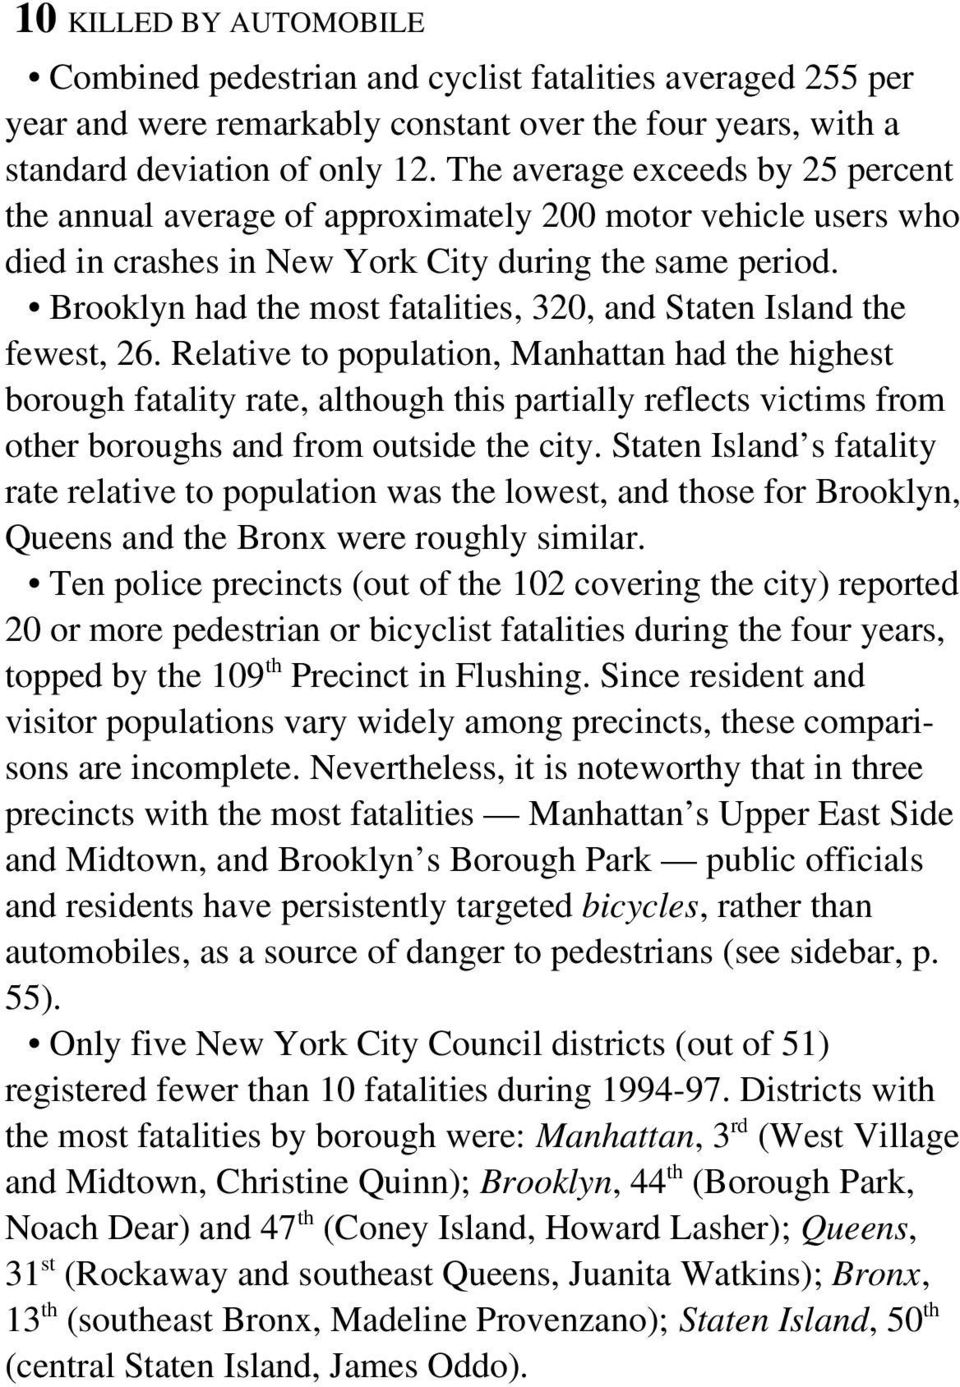 Brooklyn had the most fatalities, 320, and Staten Island the fewest, 26.